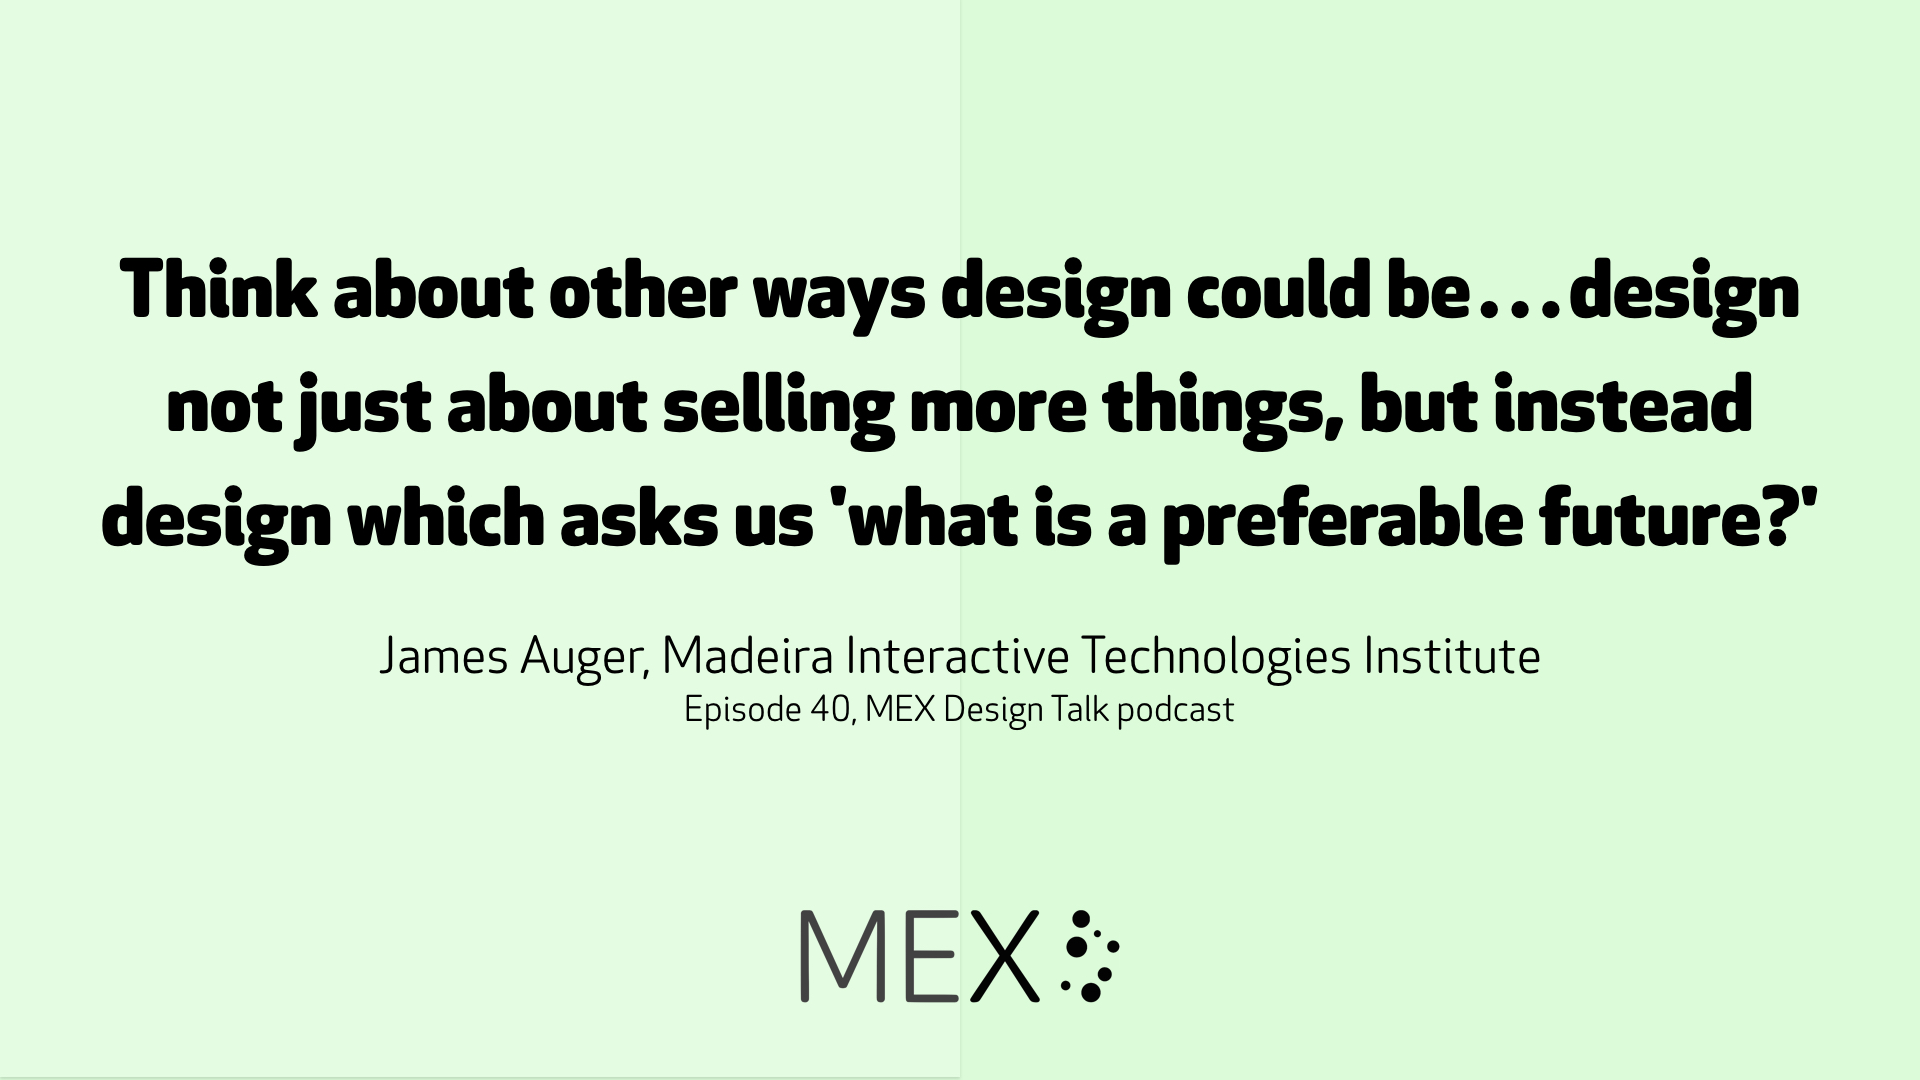 Think about other ways design could be…design not just about selling more things, but instead design which asks us 'what is a preferable future?' James Auger, Madeira Interactive Technologies Institute Episode 40, MEX Design Talk podcast